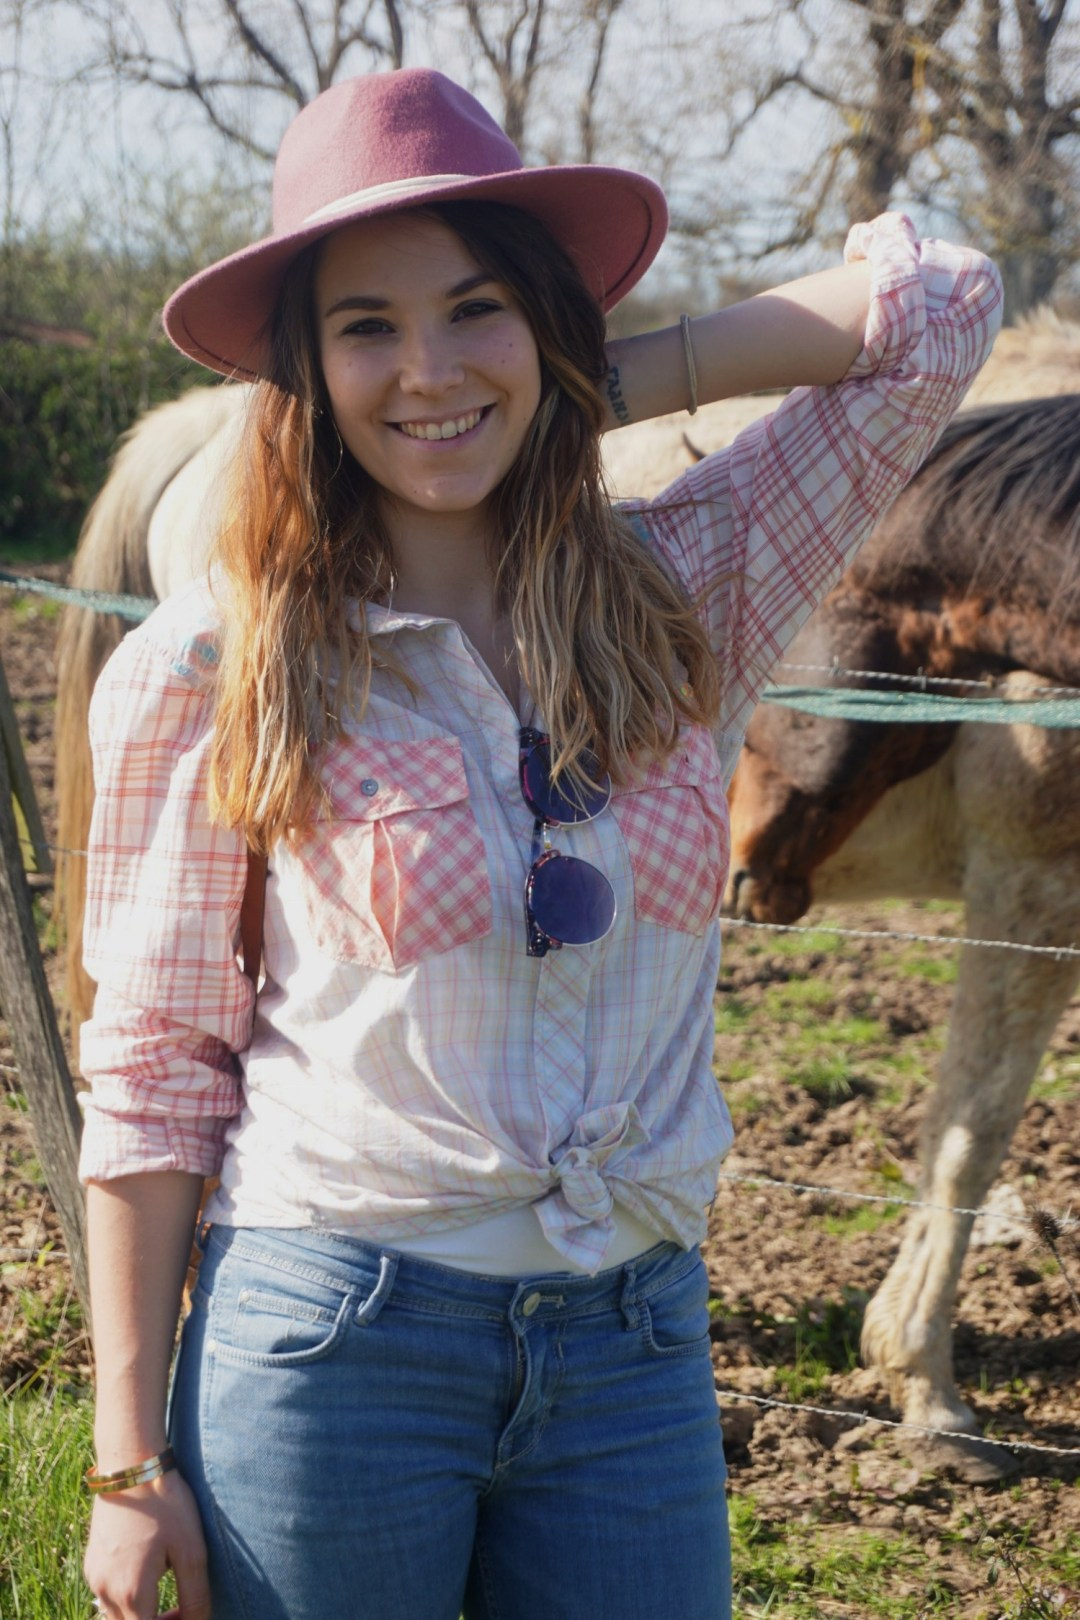 LOOK WESTERN GIRLY COW GIRL CHAPEAU ROSE BLOG MODE BORDEAUX FRANCE CORSE FASHION CENTRE EQUESTRE 05